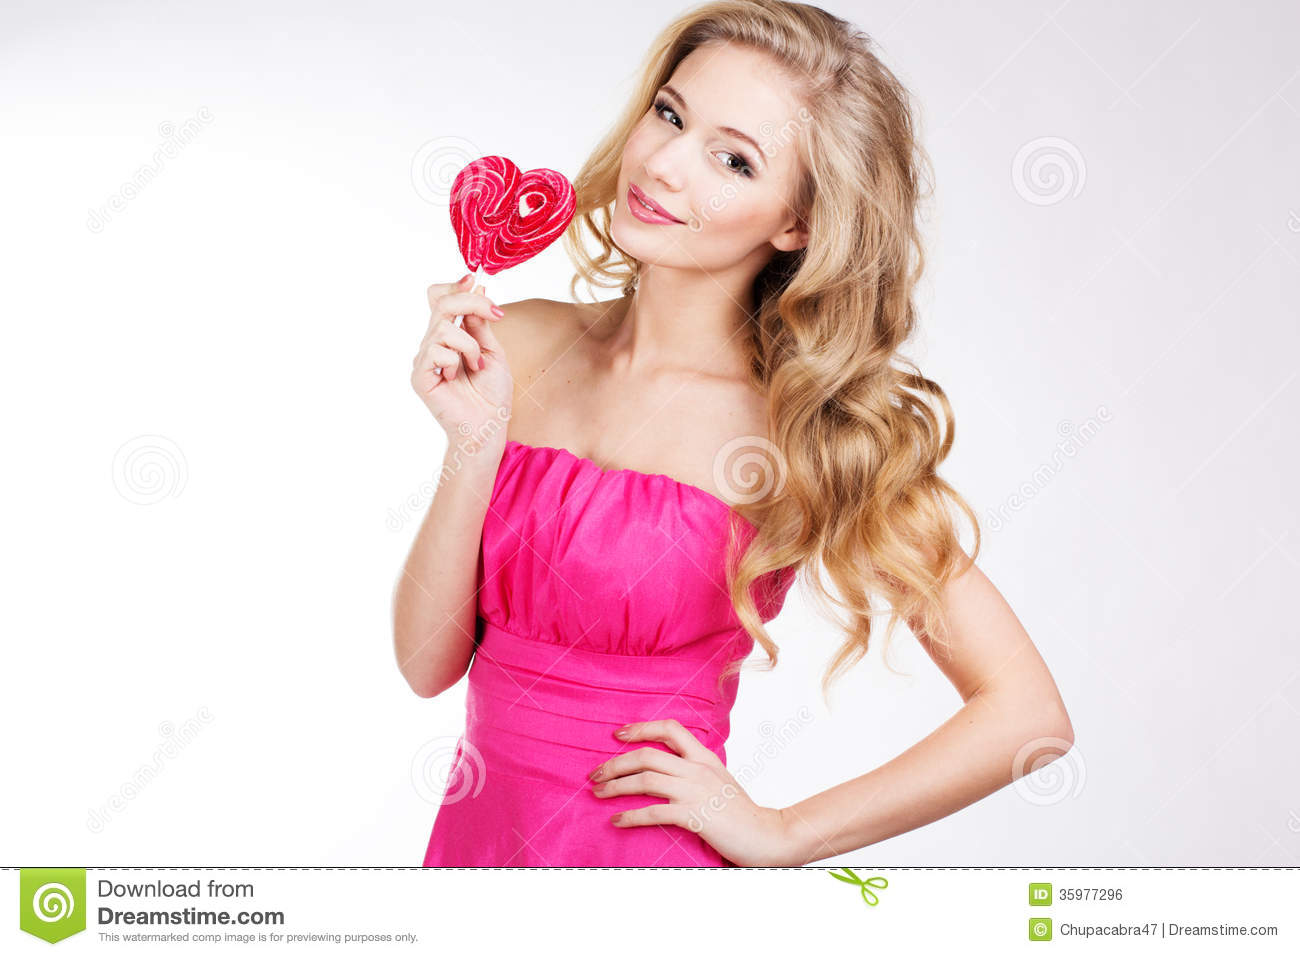 https://thumbs.dreamstime.com/z/sexy-girl-wearing-pink-dress-candy-valentine-s-day-35977296.jpg Hot Pink Dress For Girls